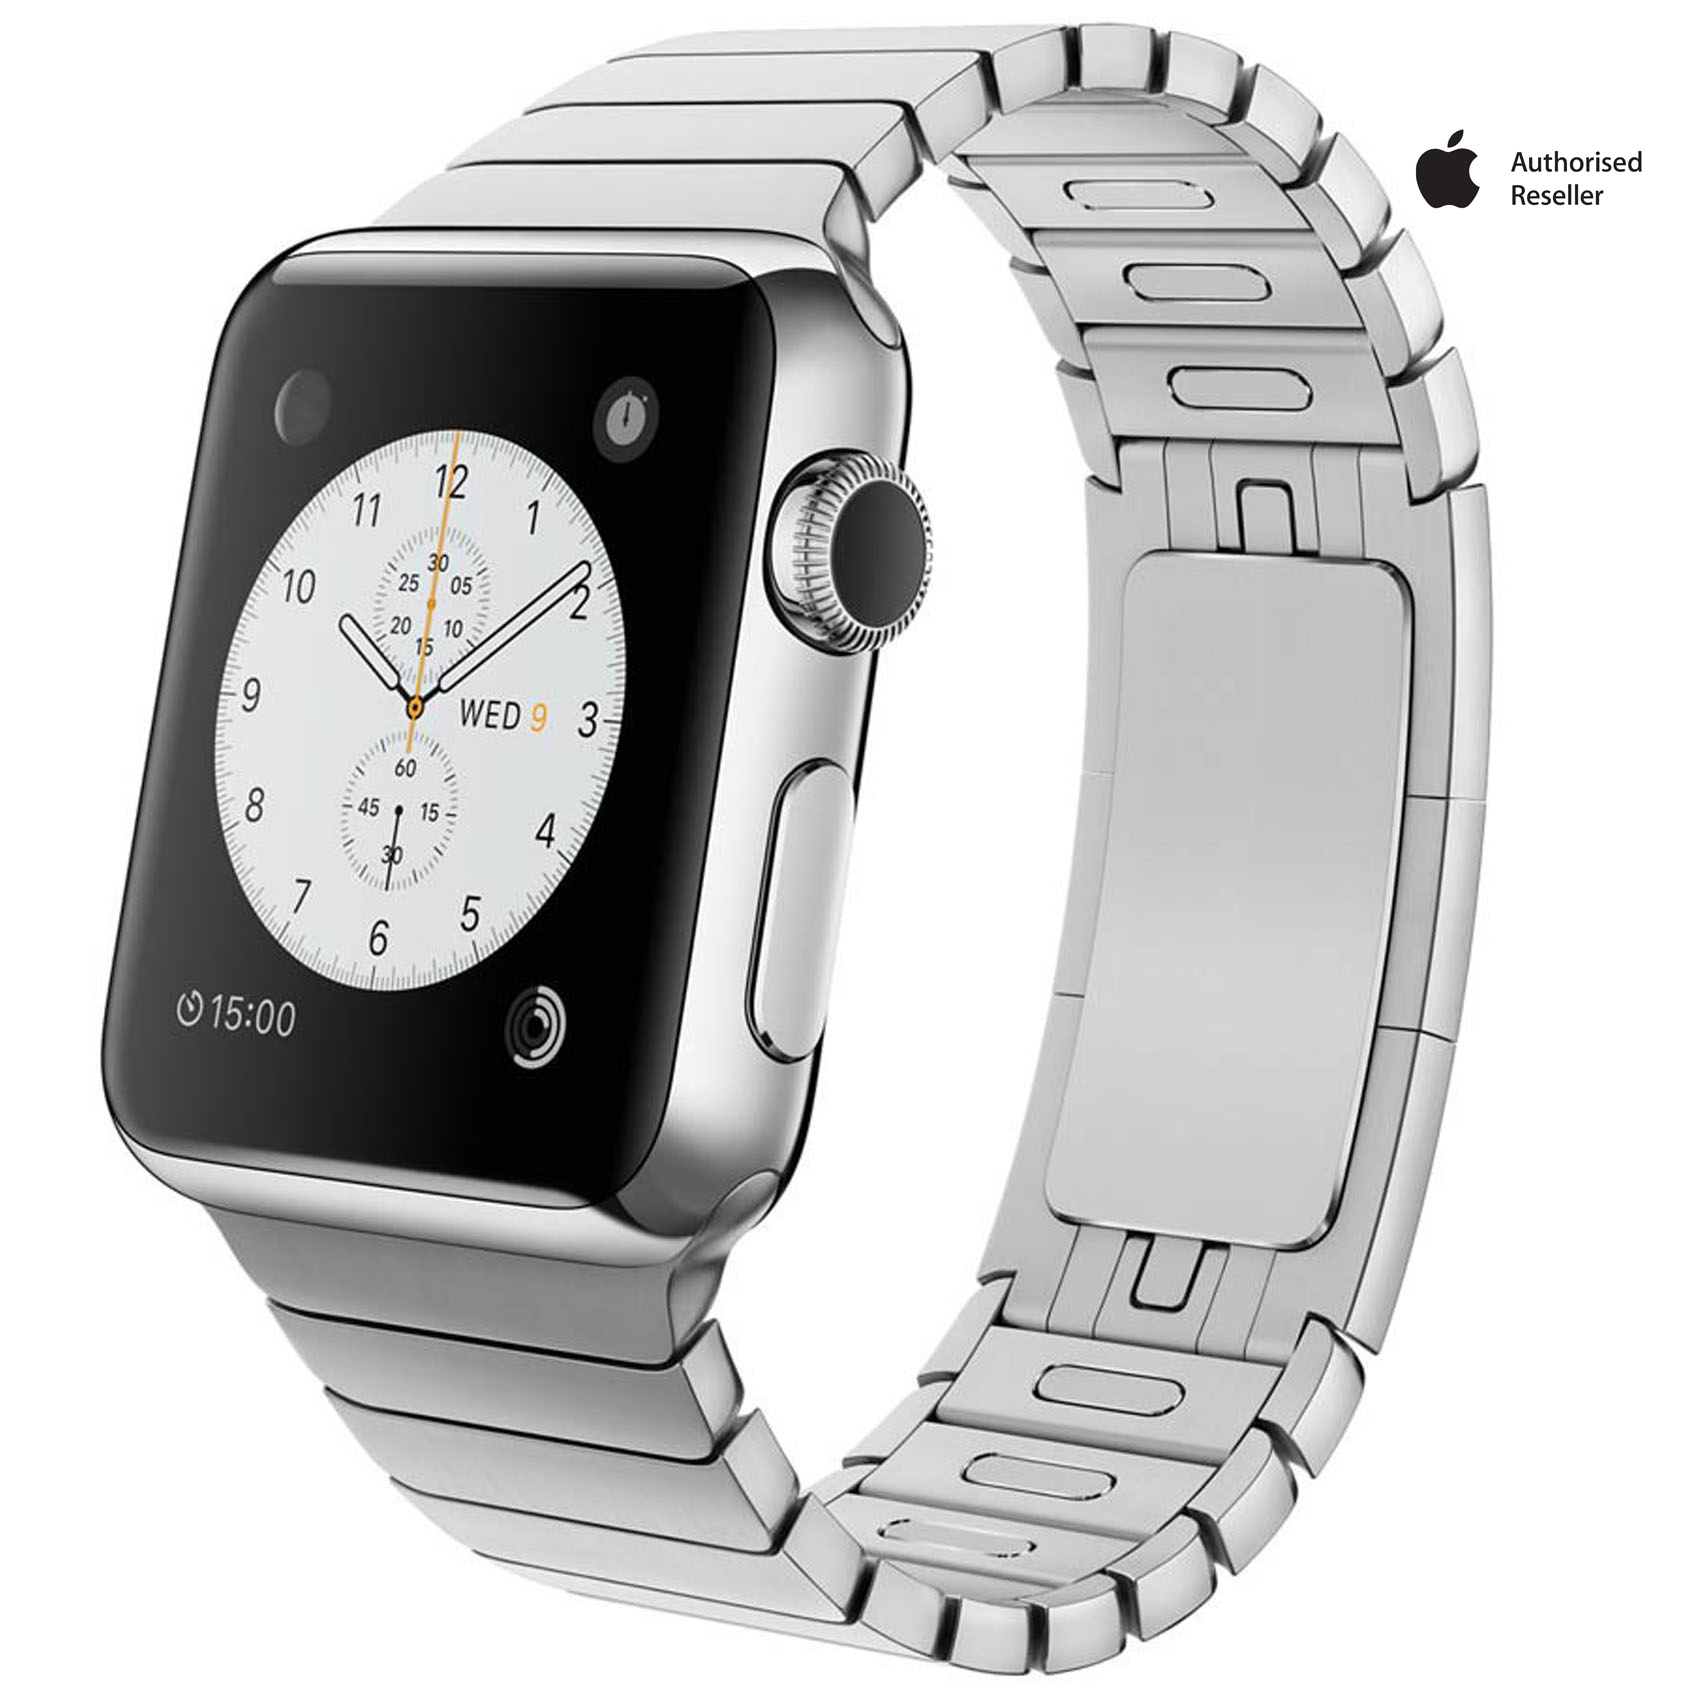 APPLE WATCH SR1 STEL 38MM CASE BRAC